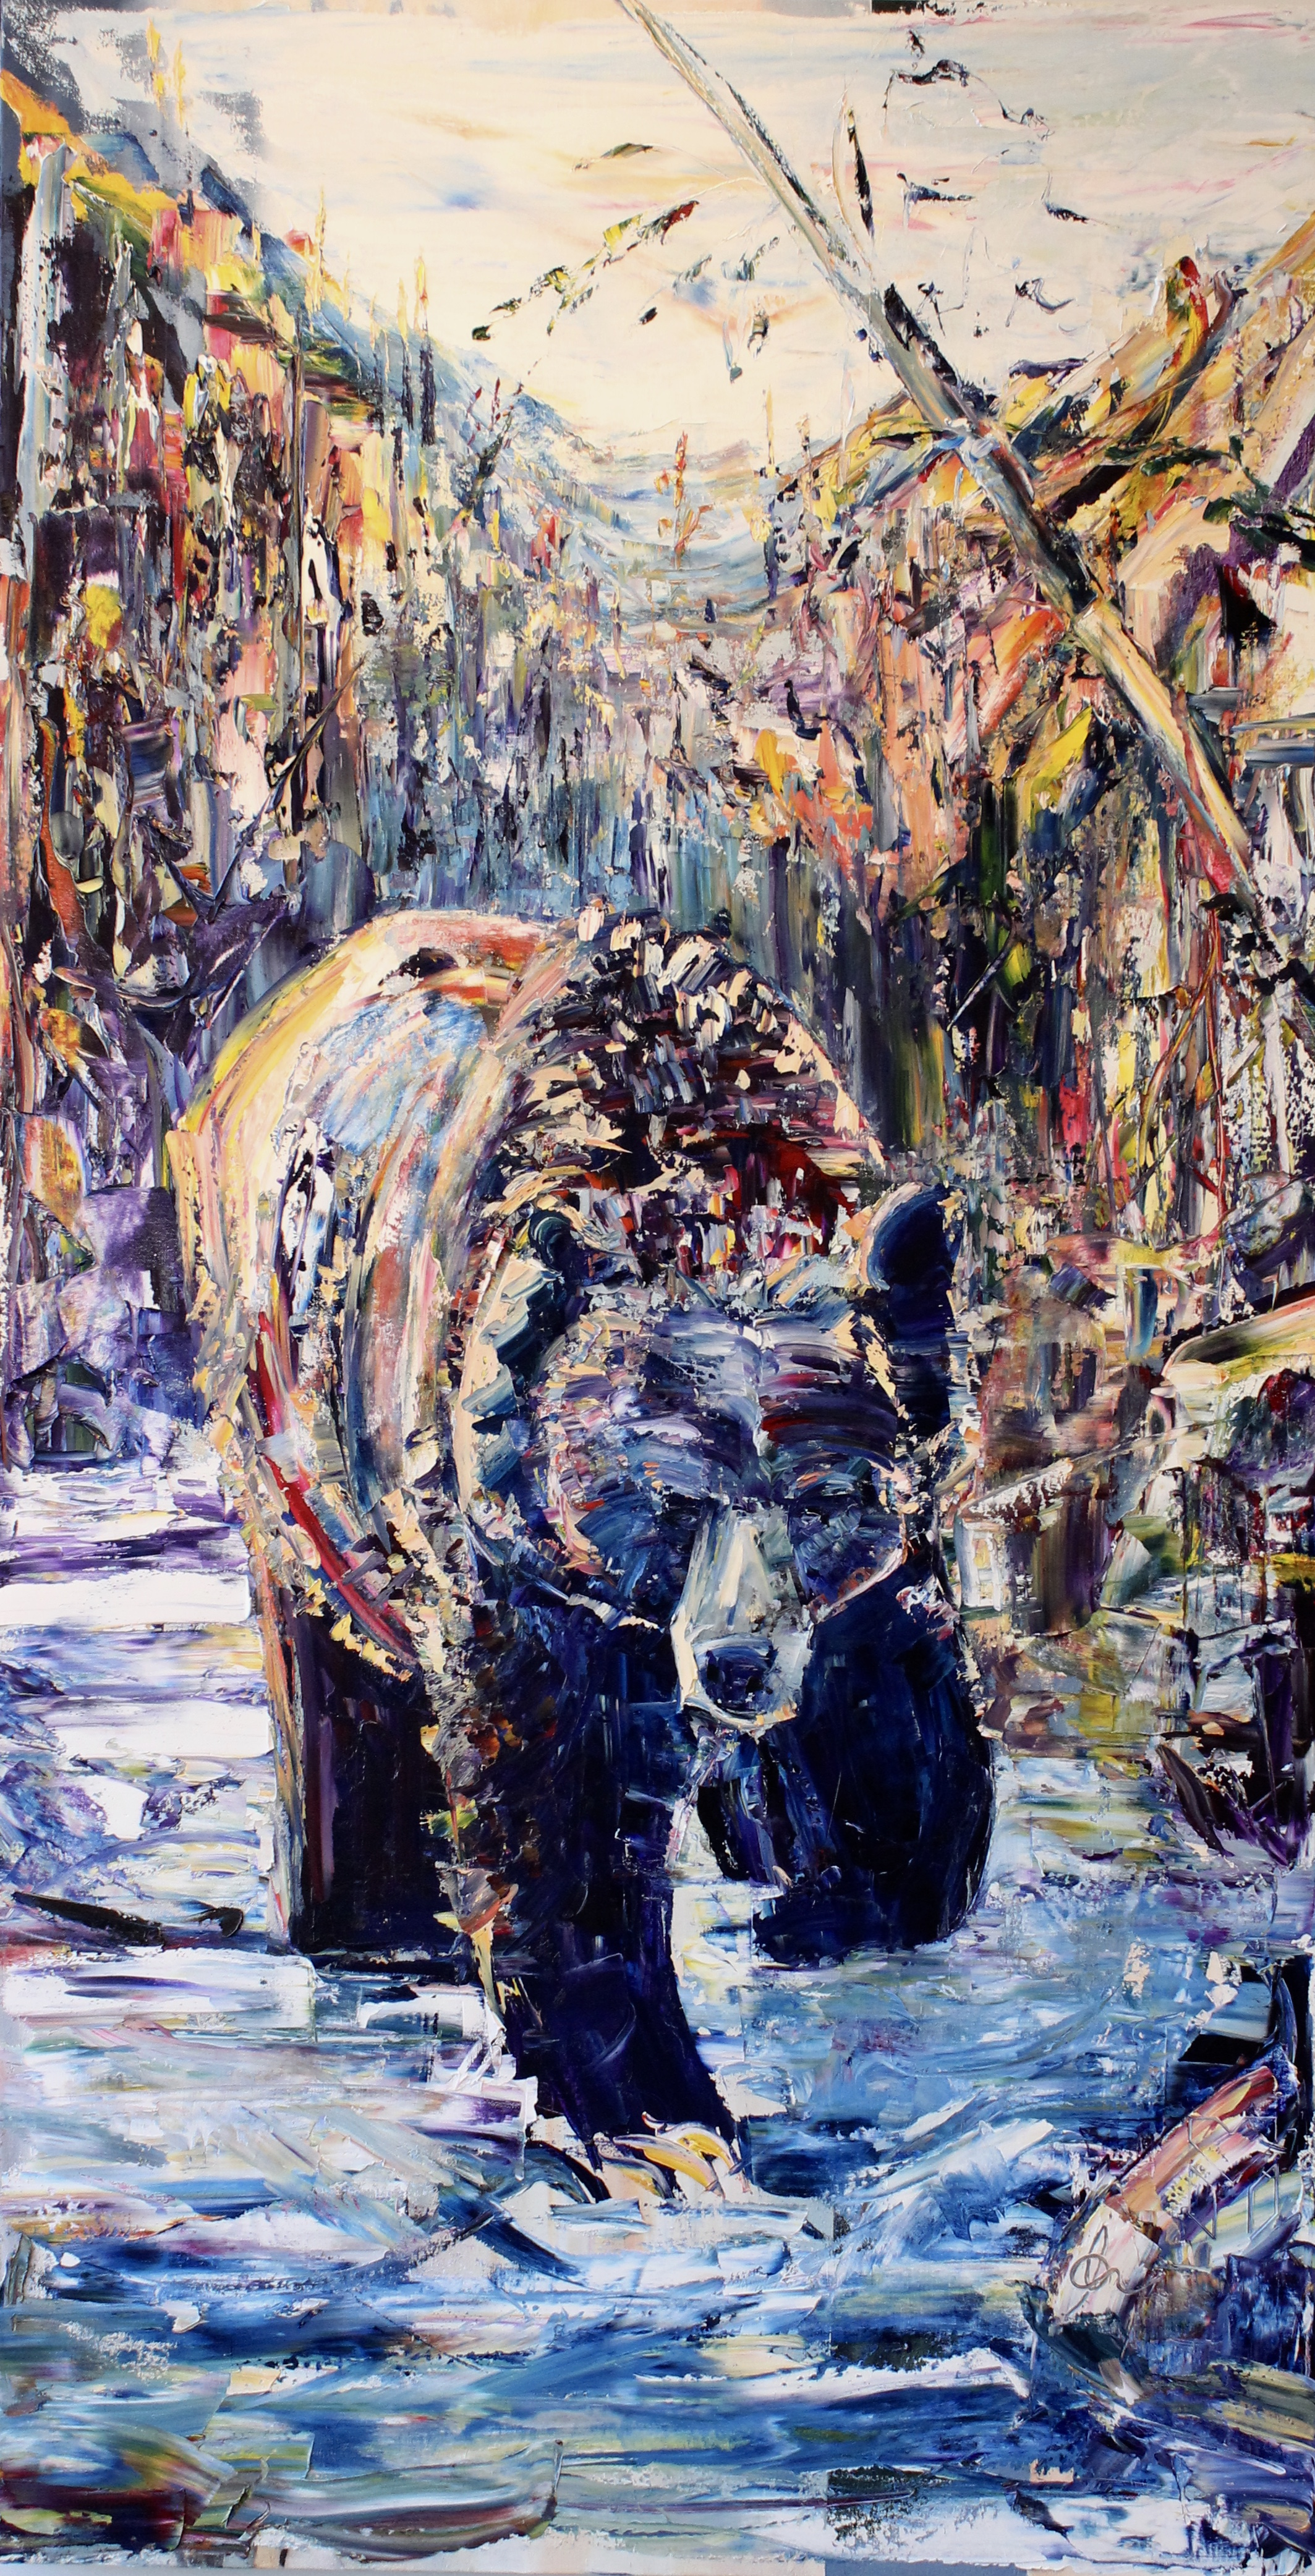 """Gone Fishing - 36"""" x 68""""Oil on canvas, Adam MeikleSOLD/PRIVATE COLLECTION"""